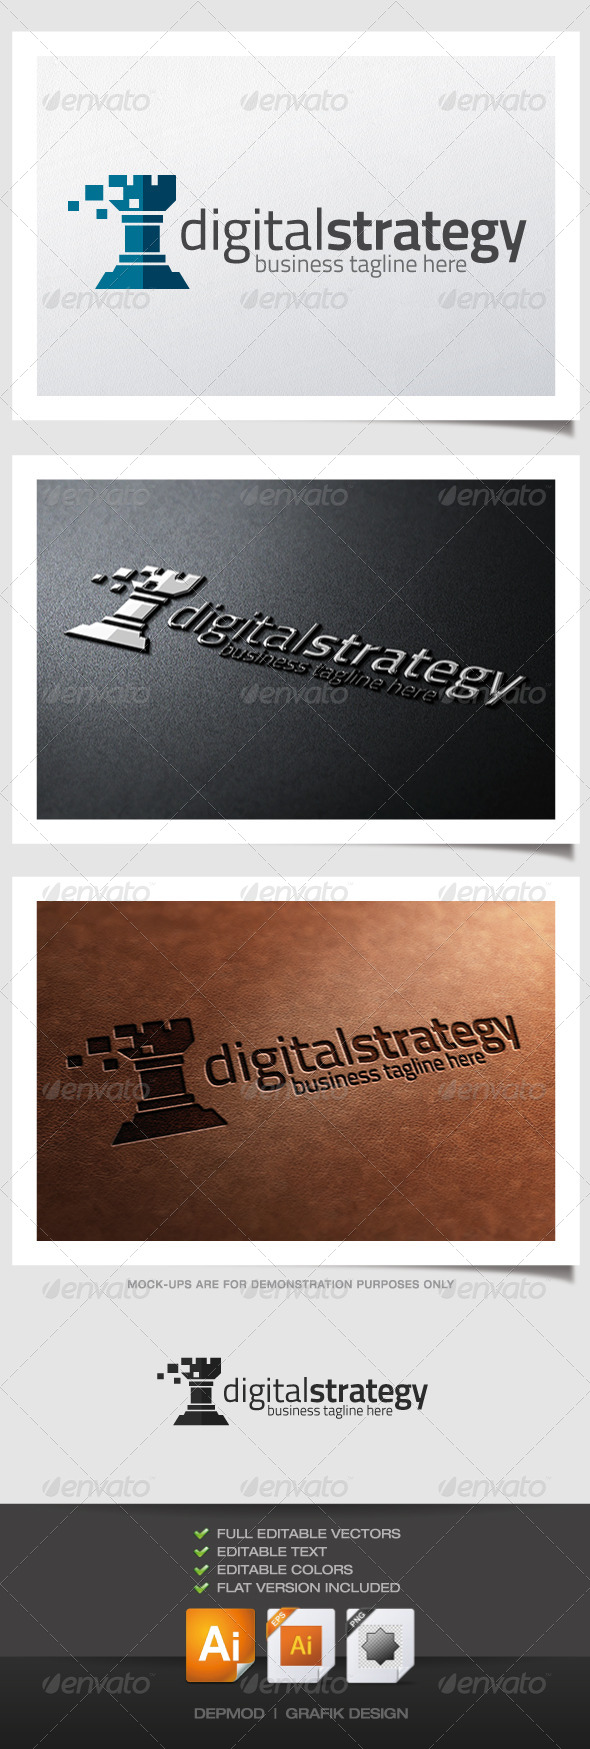 GraphicRiver Digital Strategy 4592338